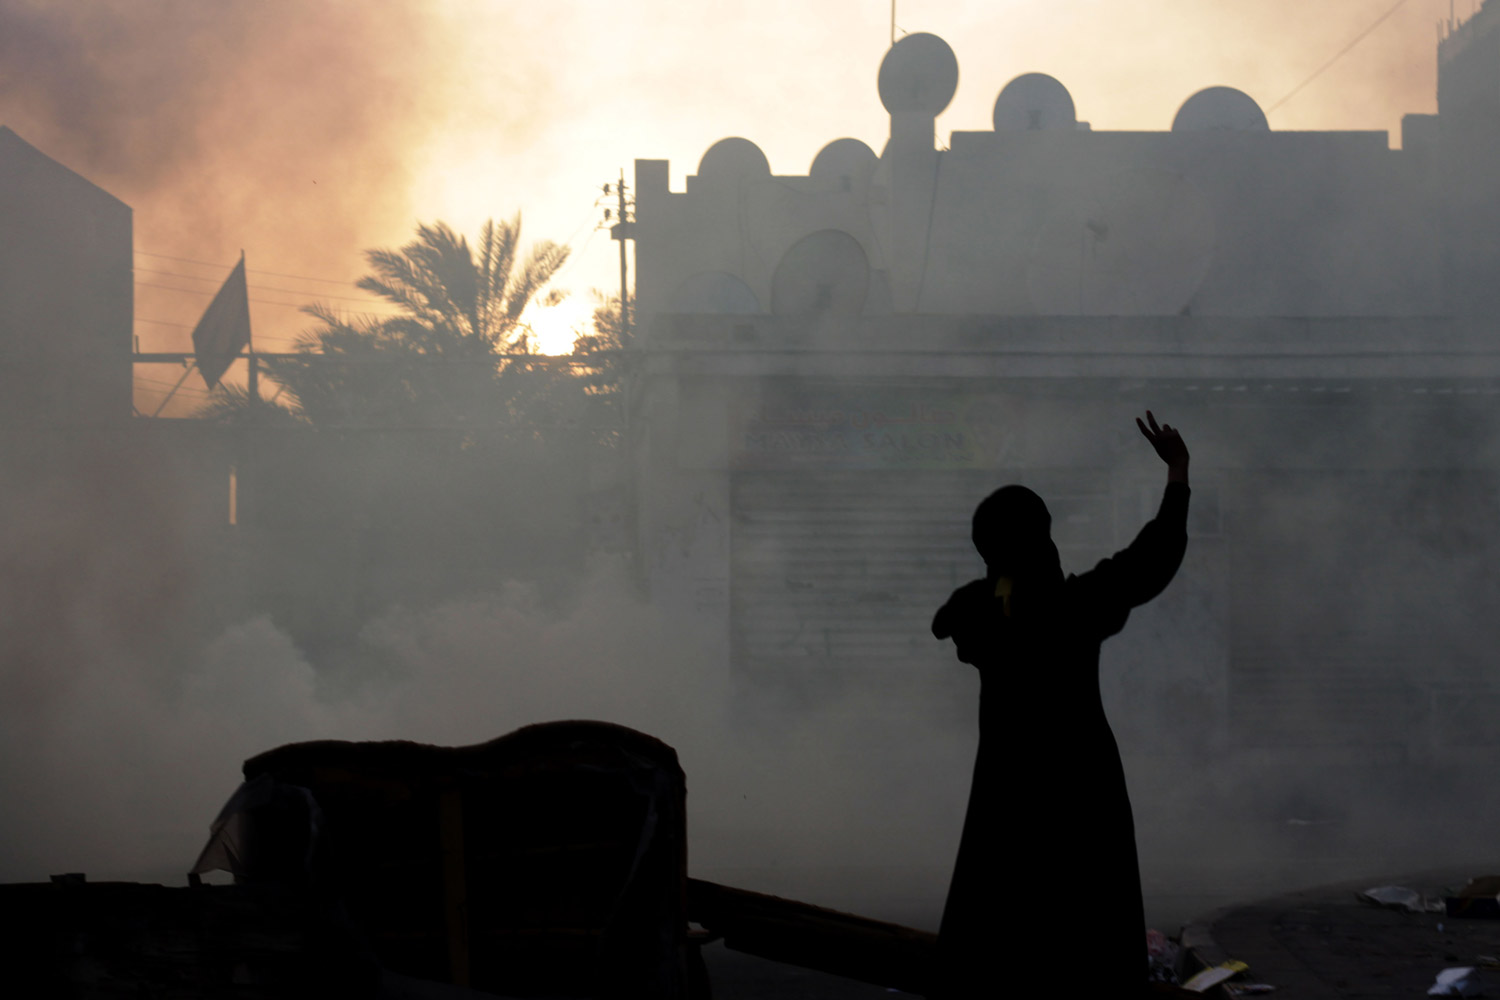 February 6, 2012. A Bahraini woman shouts anti-government slogans as she gestures toward riot police firing tear gas in the western village of Malkiya, Bahrain.